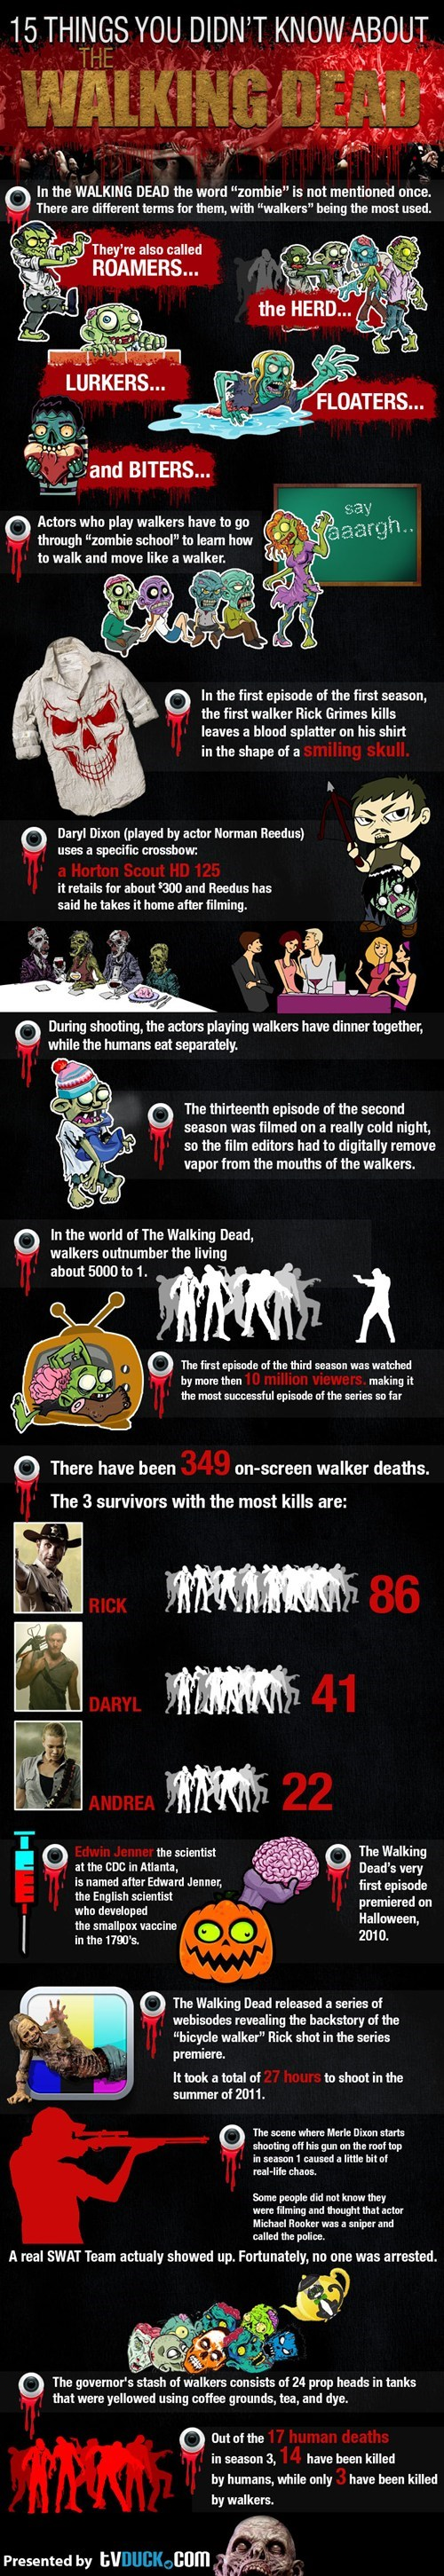 The Walking Dead Meme of 15 fun facts about the show that you didn't know about, at least now all of them.